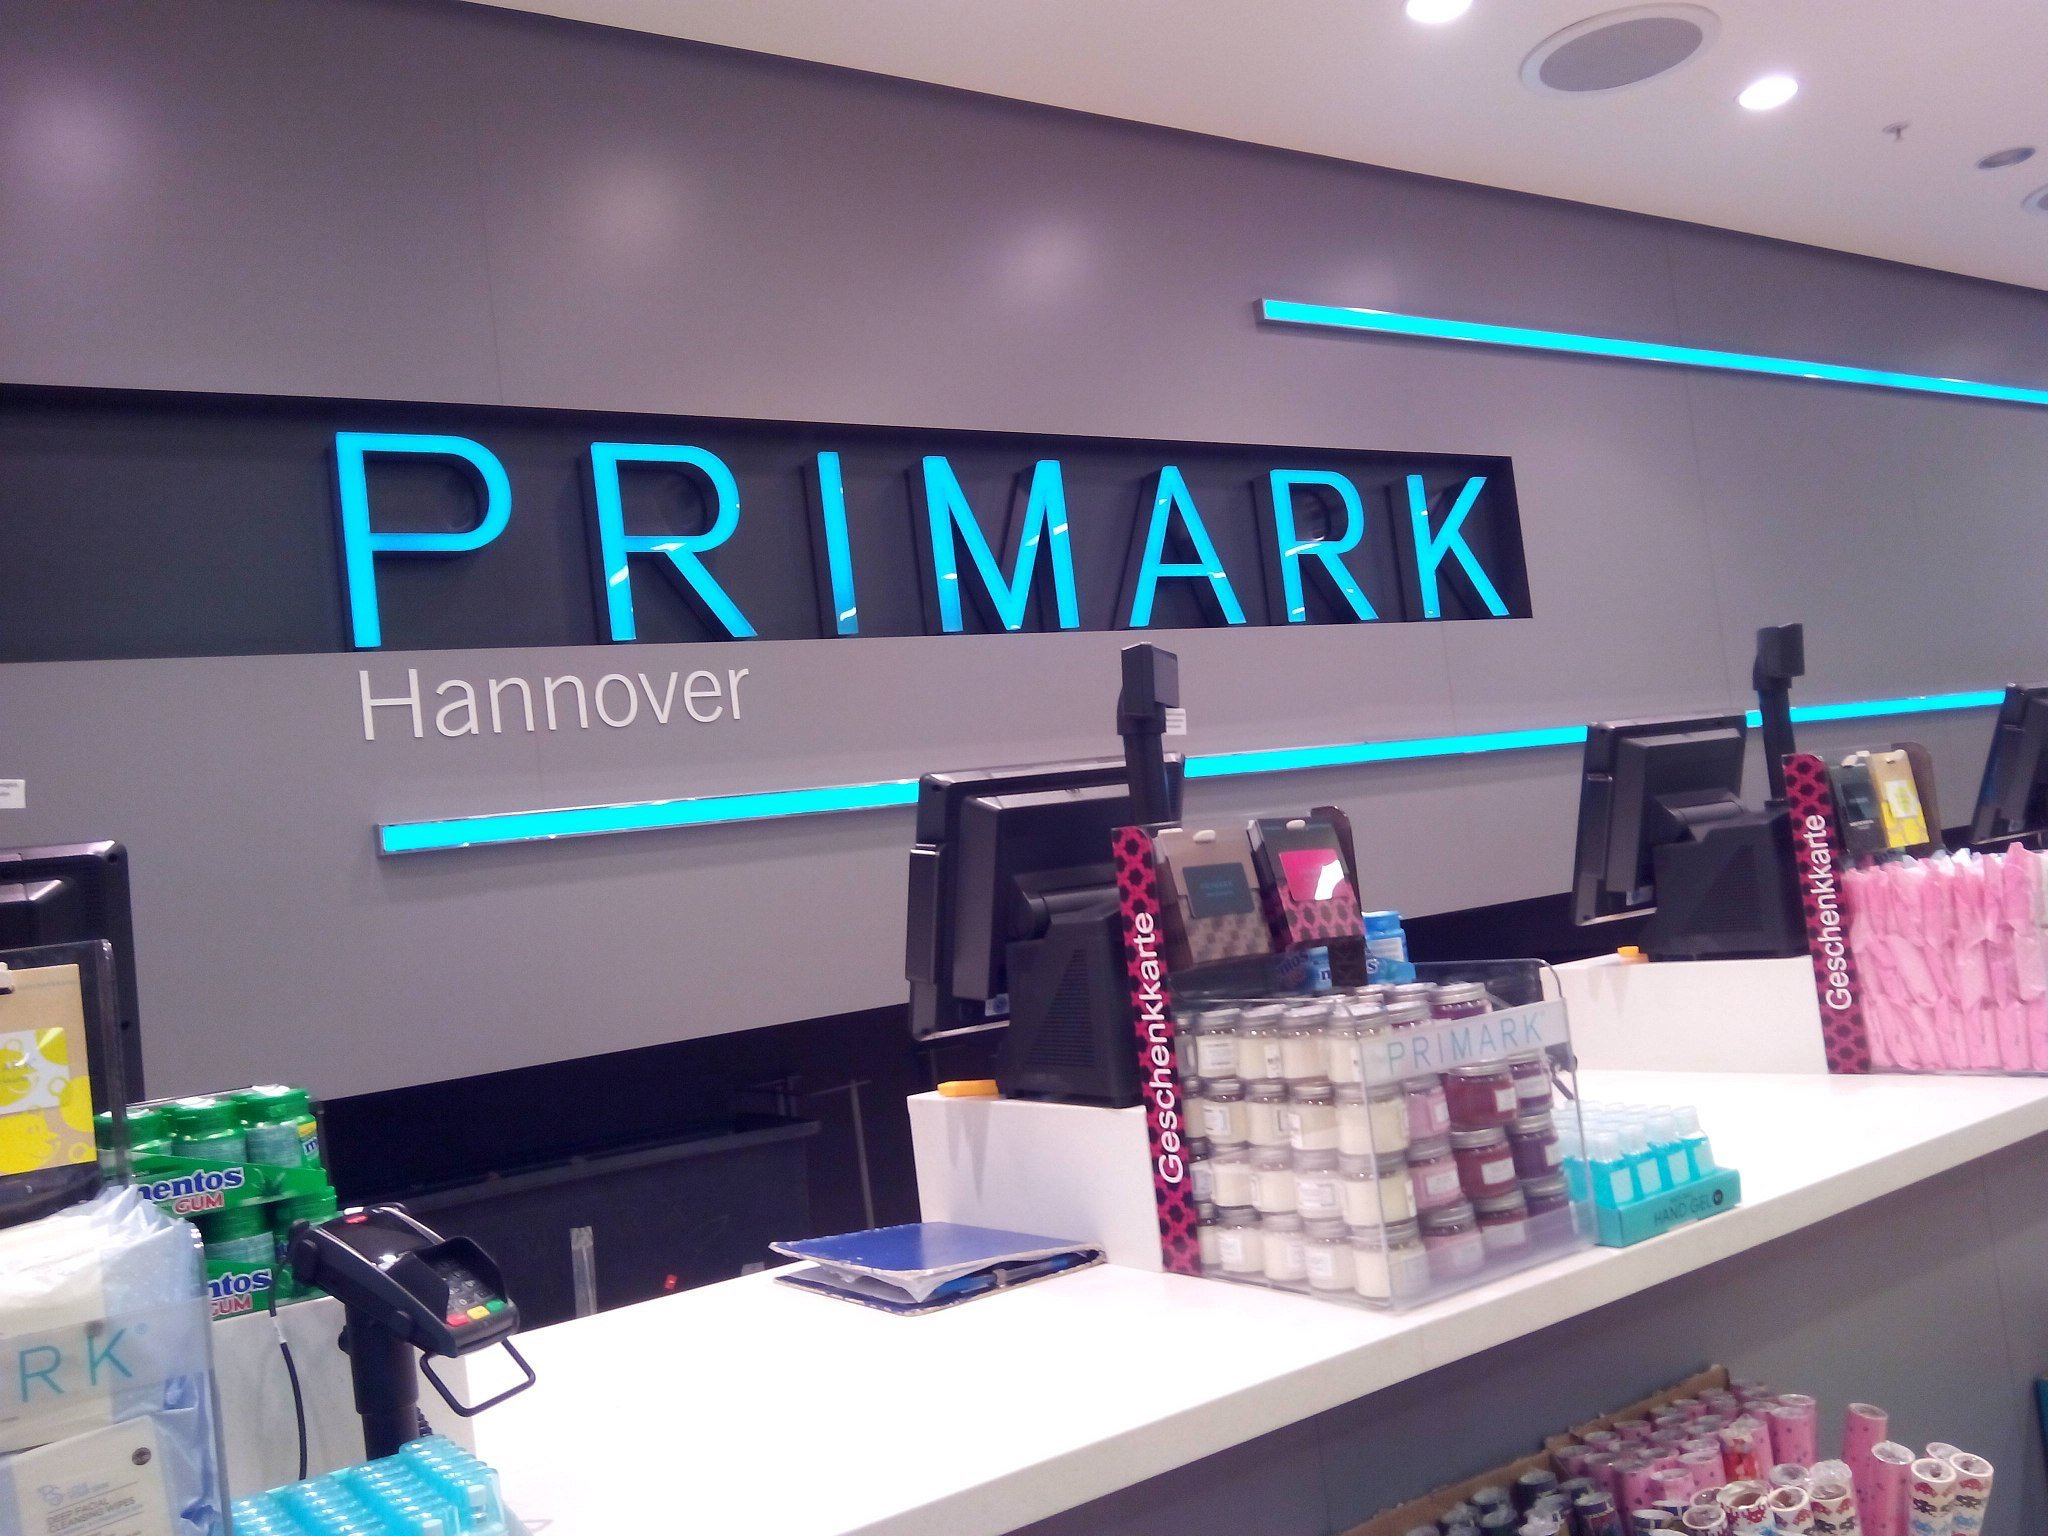 2019 year looks- Primark accused of pinkwashing in its 2019 Pride Collection